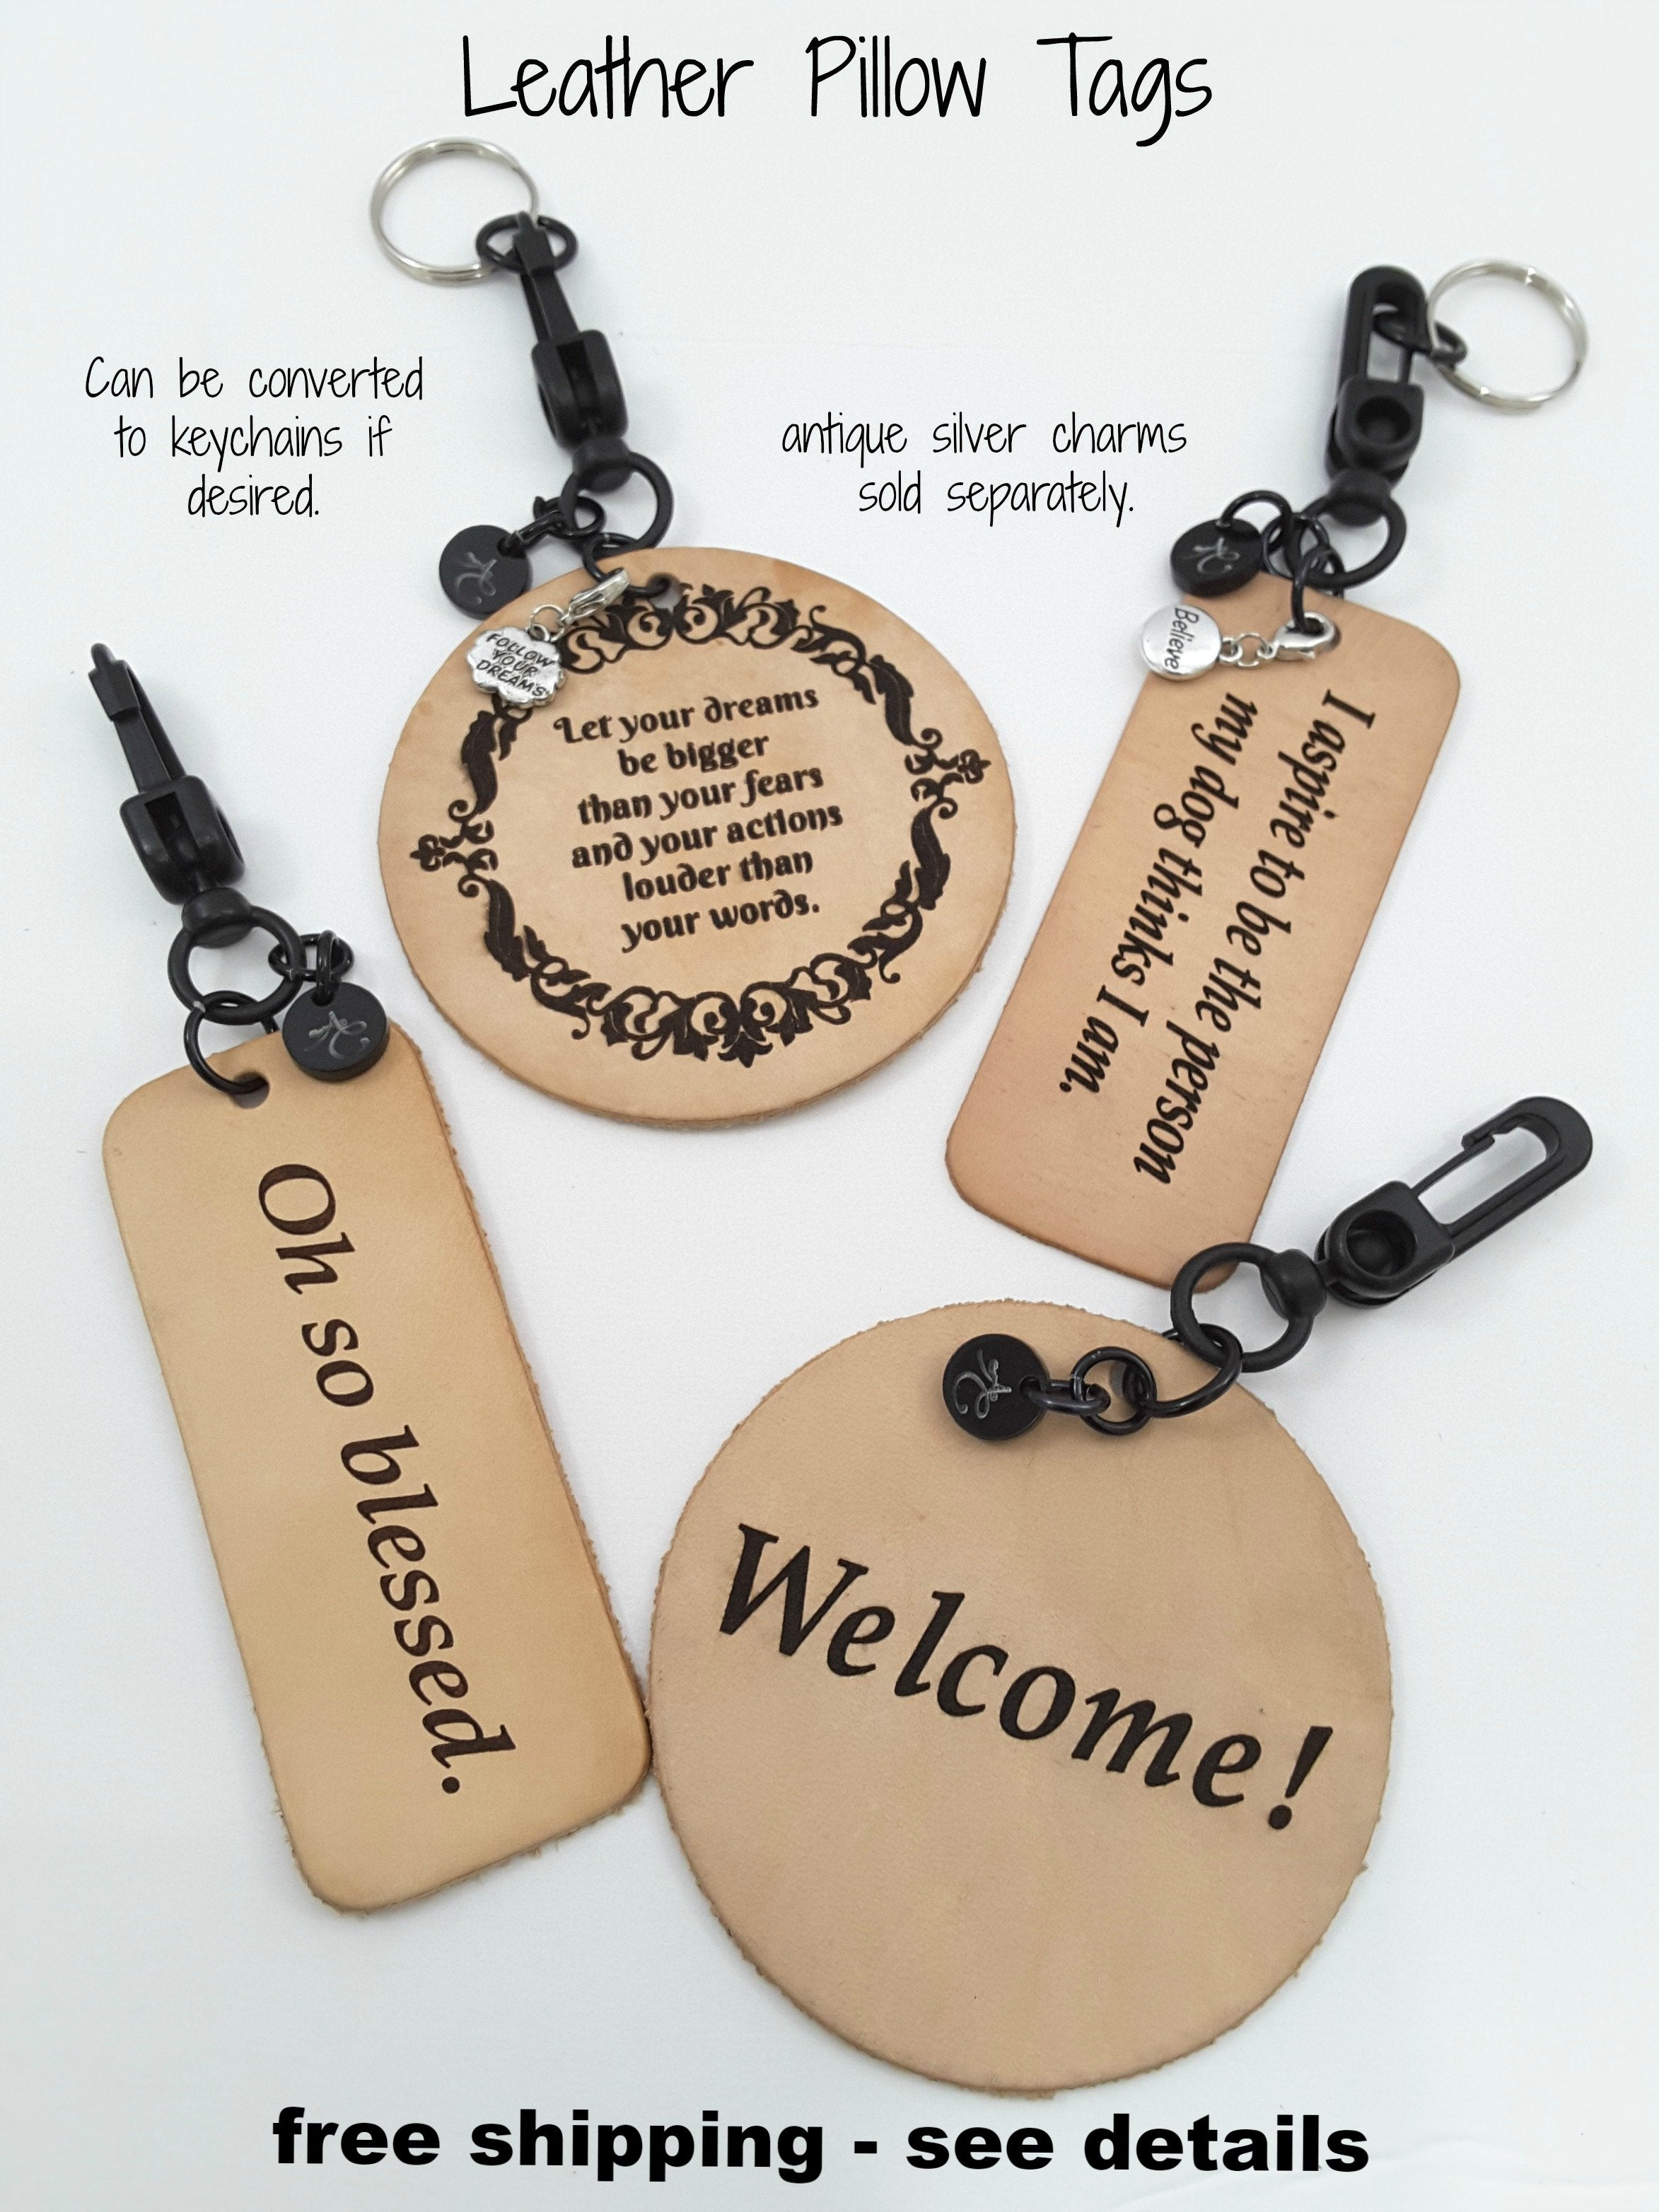 Leather Pillow, Purse, Backpack, Planner Tags or Keychains - Circular - Free Shipping! - TheLastWordBish.com